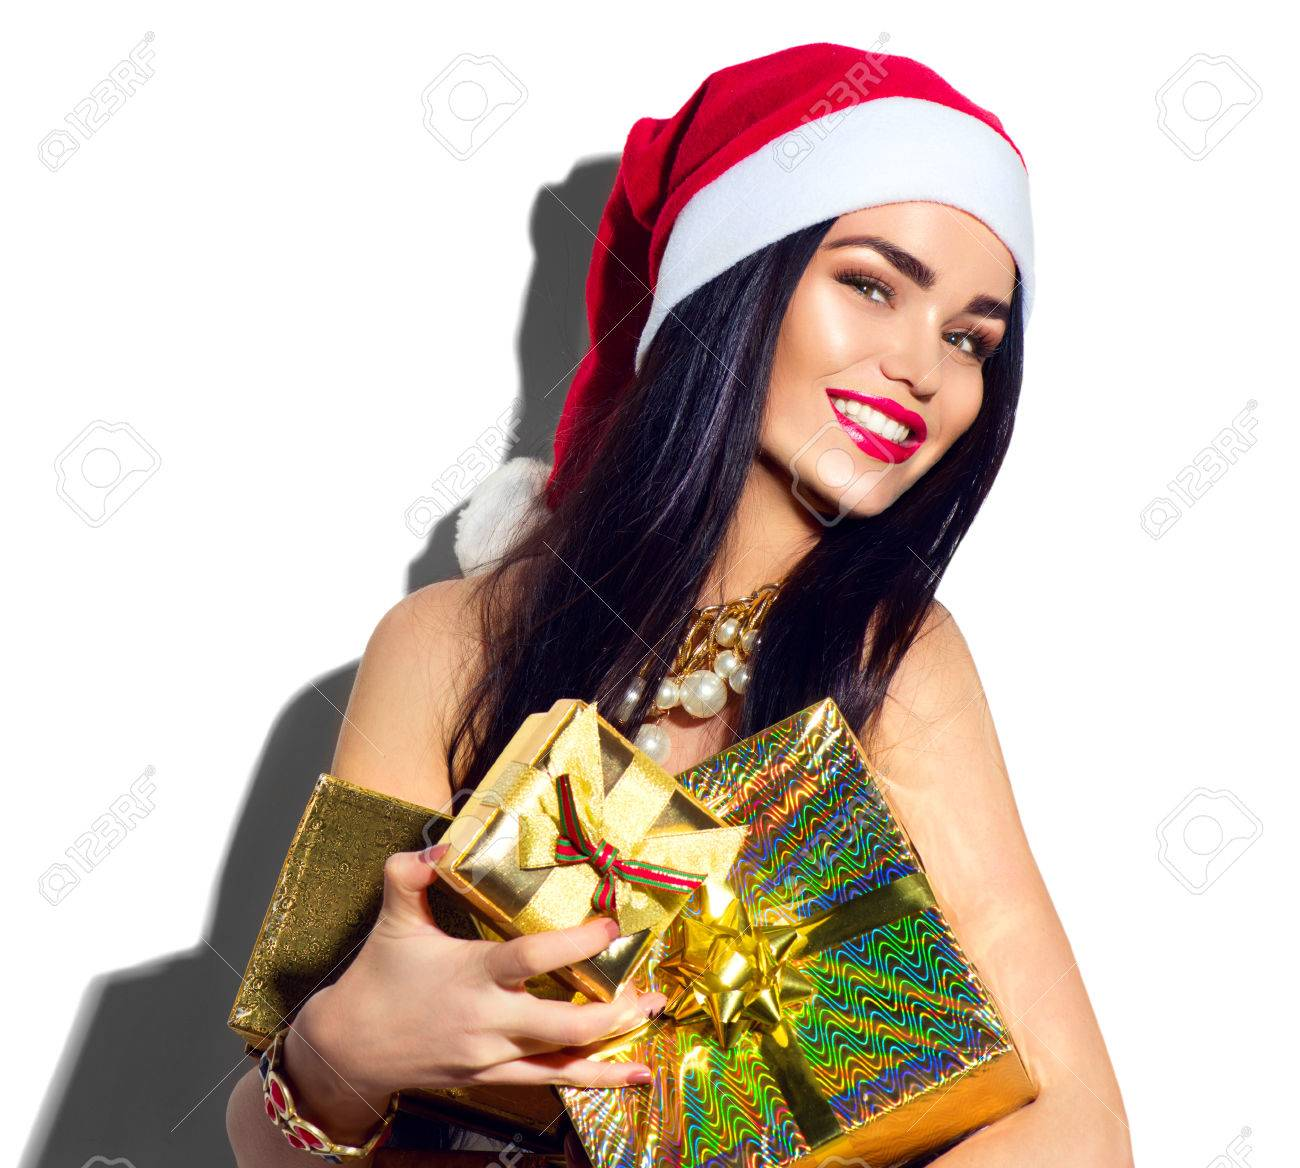 Christmas Fashion Model Girl Sexy Santa Holding Gifts Stock Photo Picture And Royalty Free Image Image 67522009